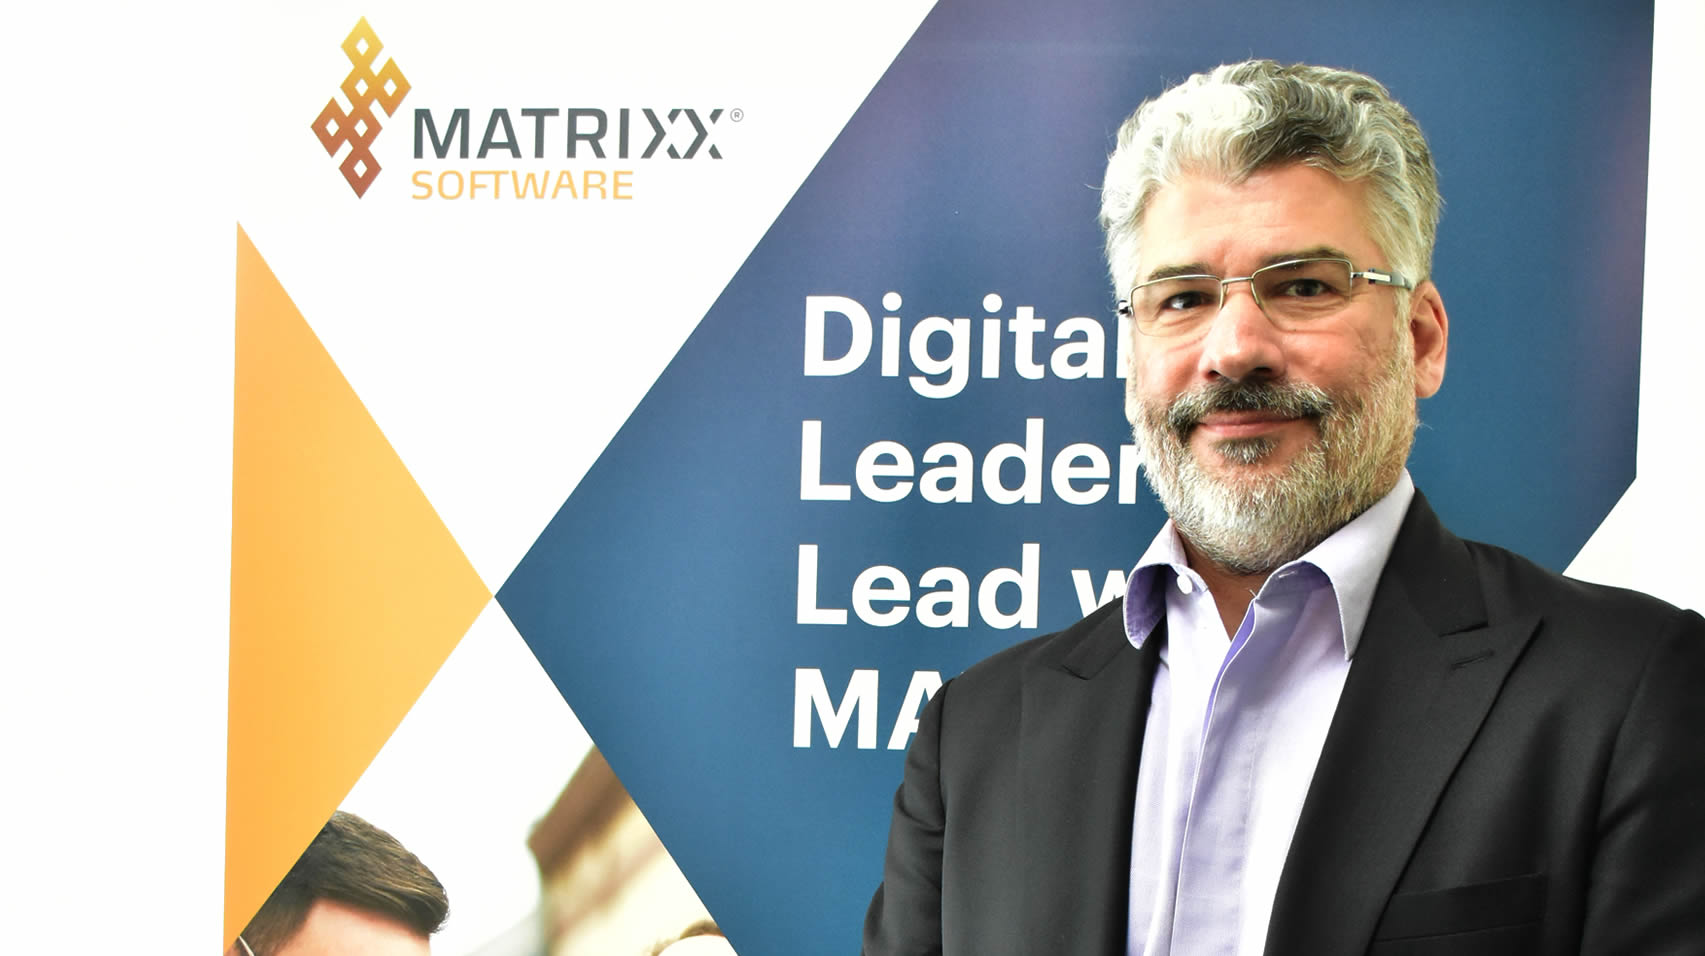 MATRIXX Software, a global leader in addressing the technological challenges for operators